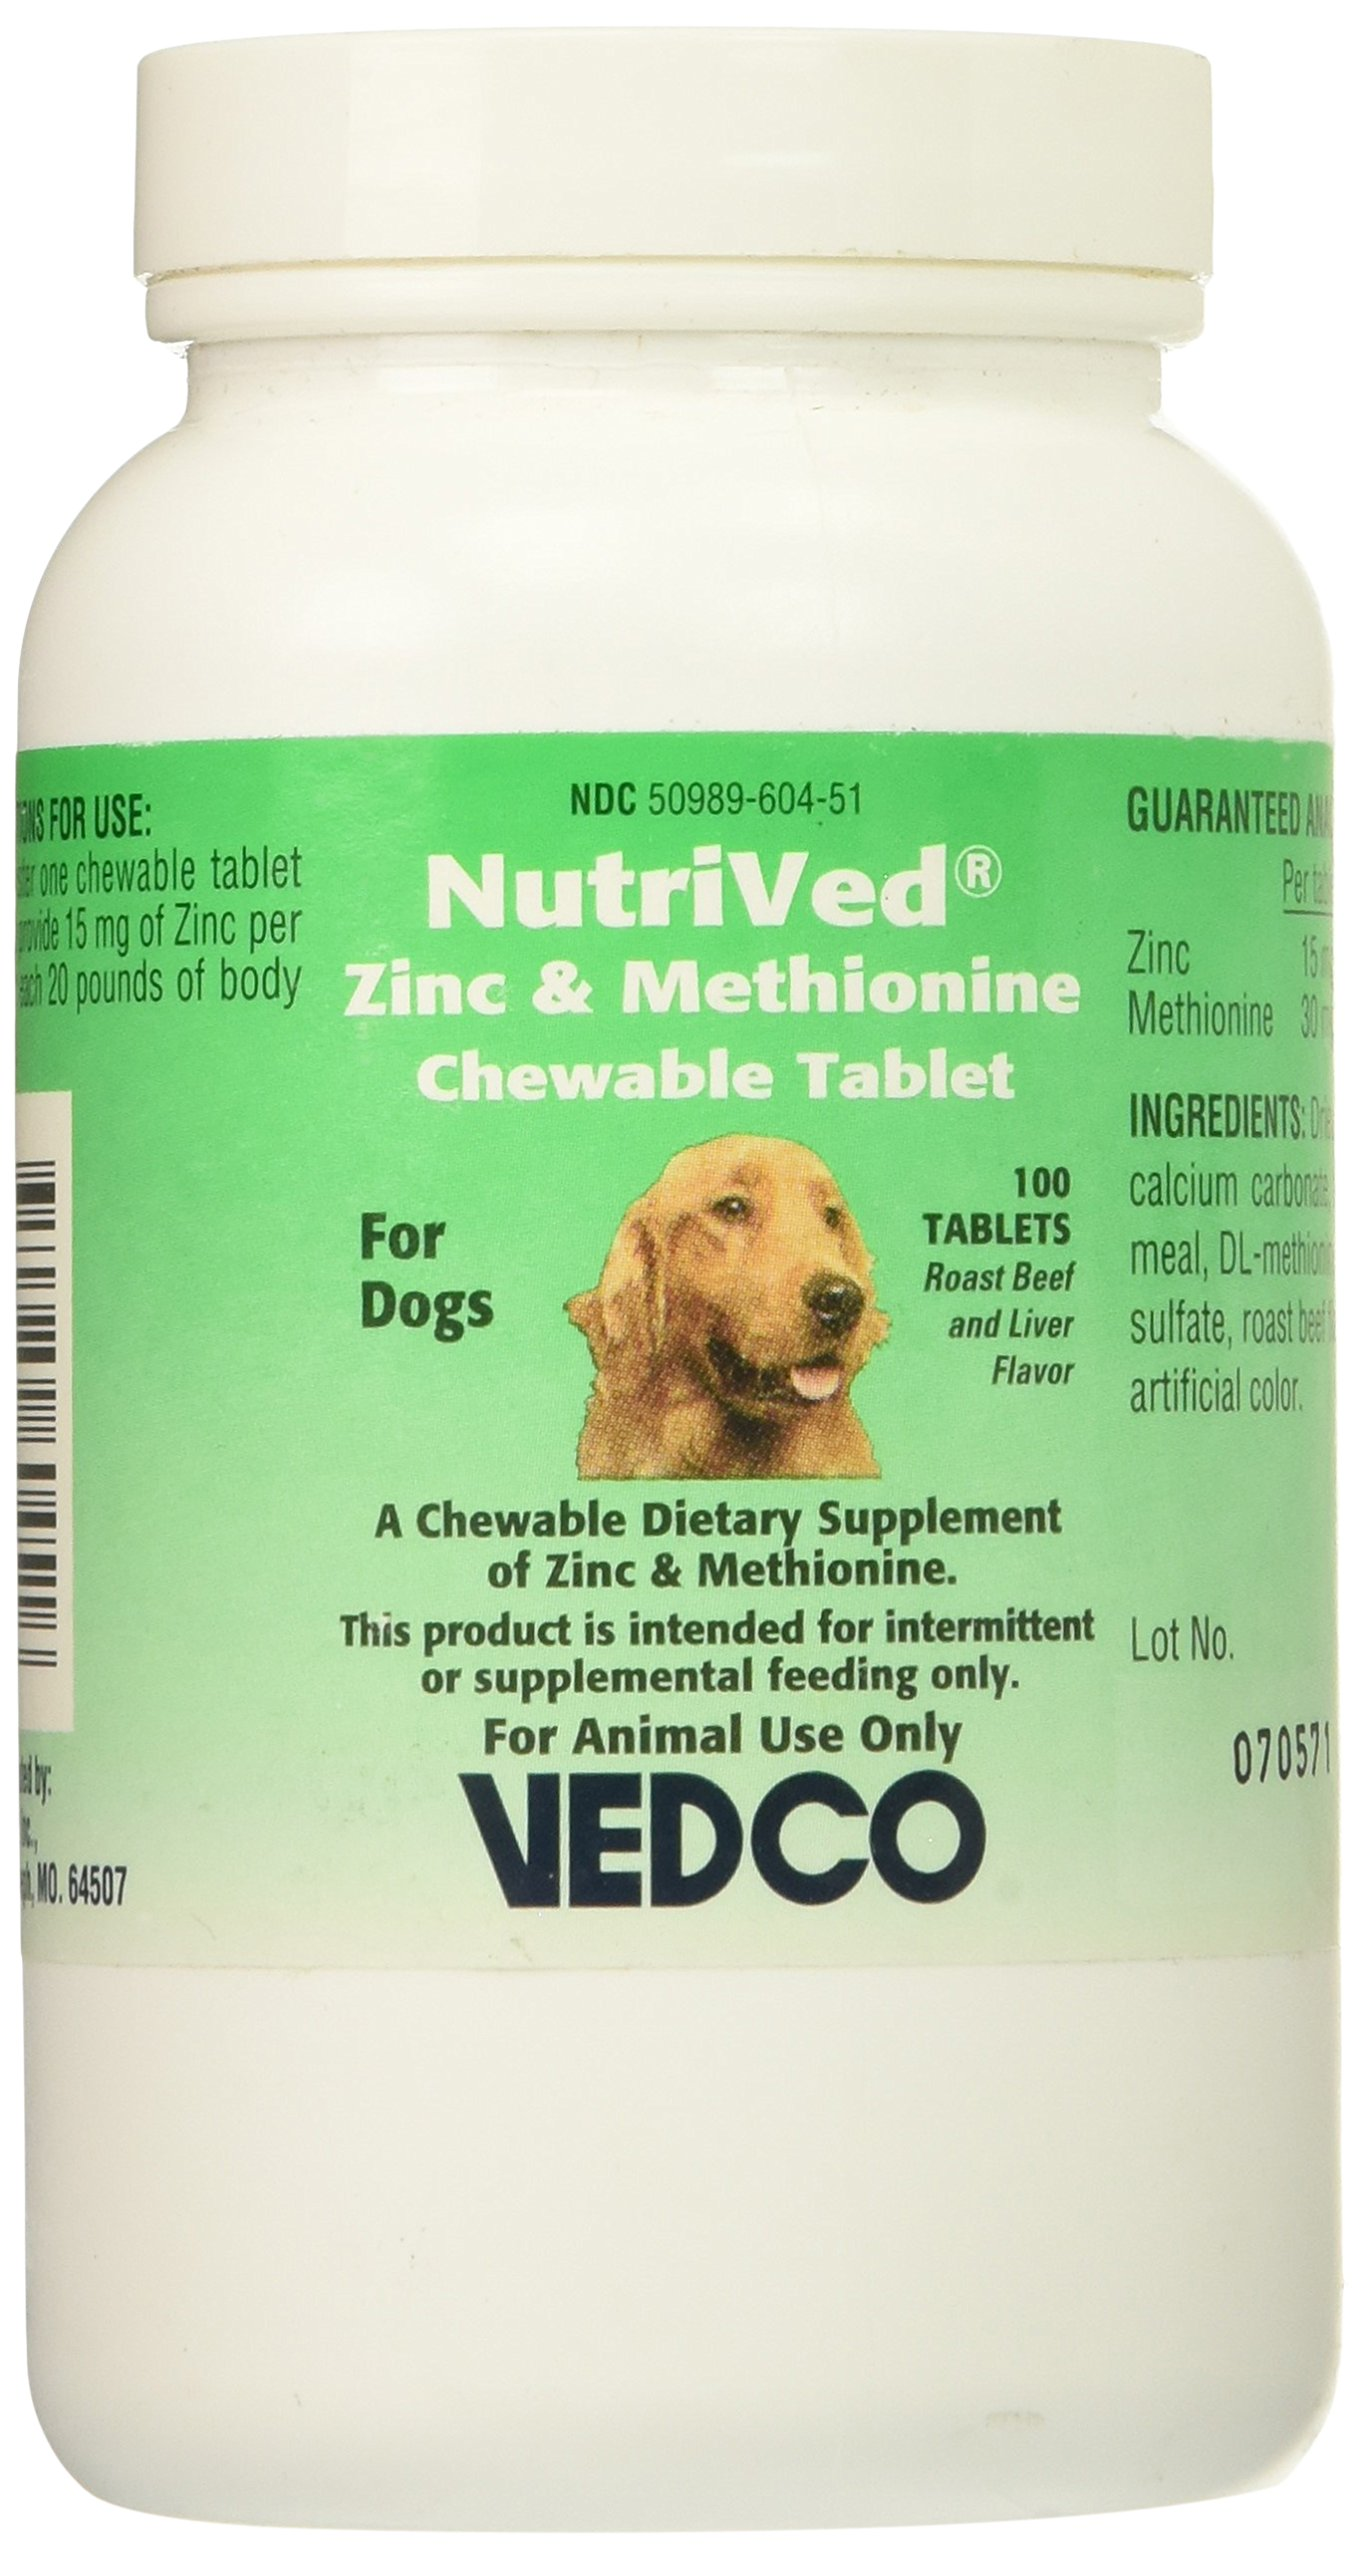 NutriVed Zinpro for Dogs (100 CHEWABLE Tablets) by Vedco